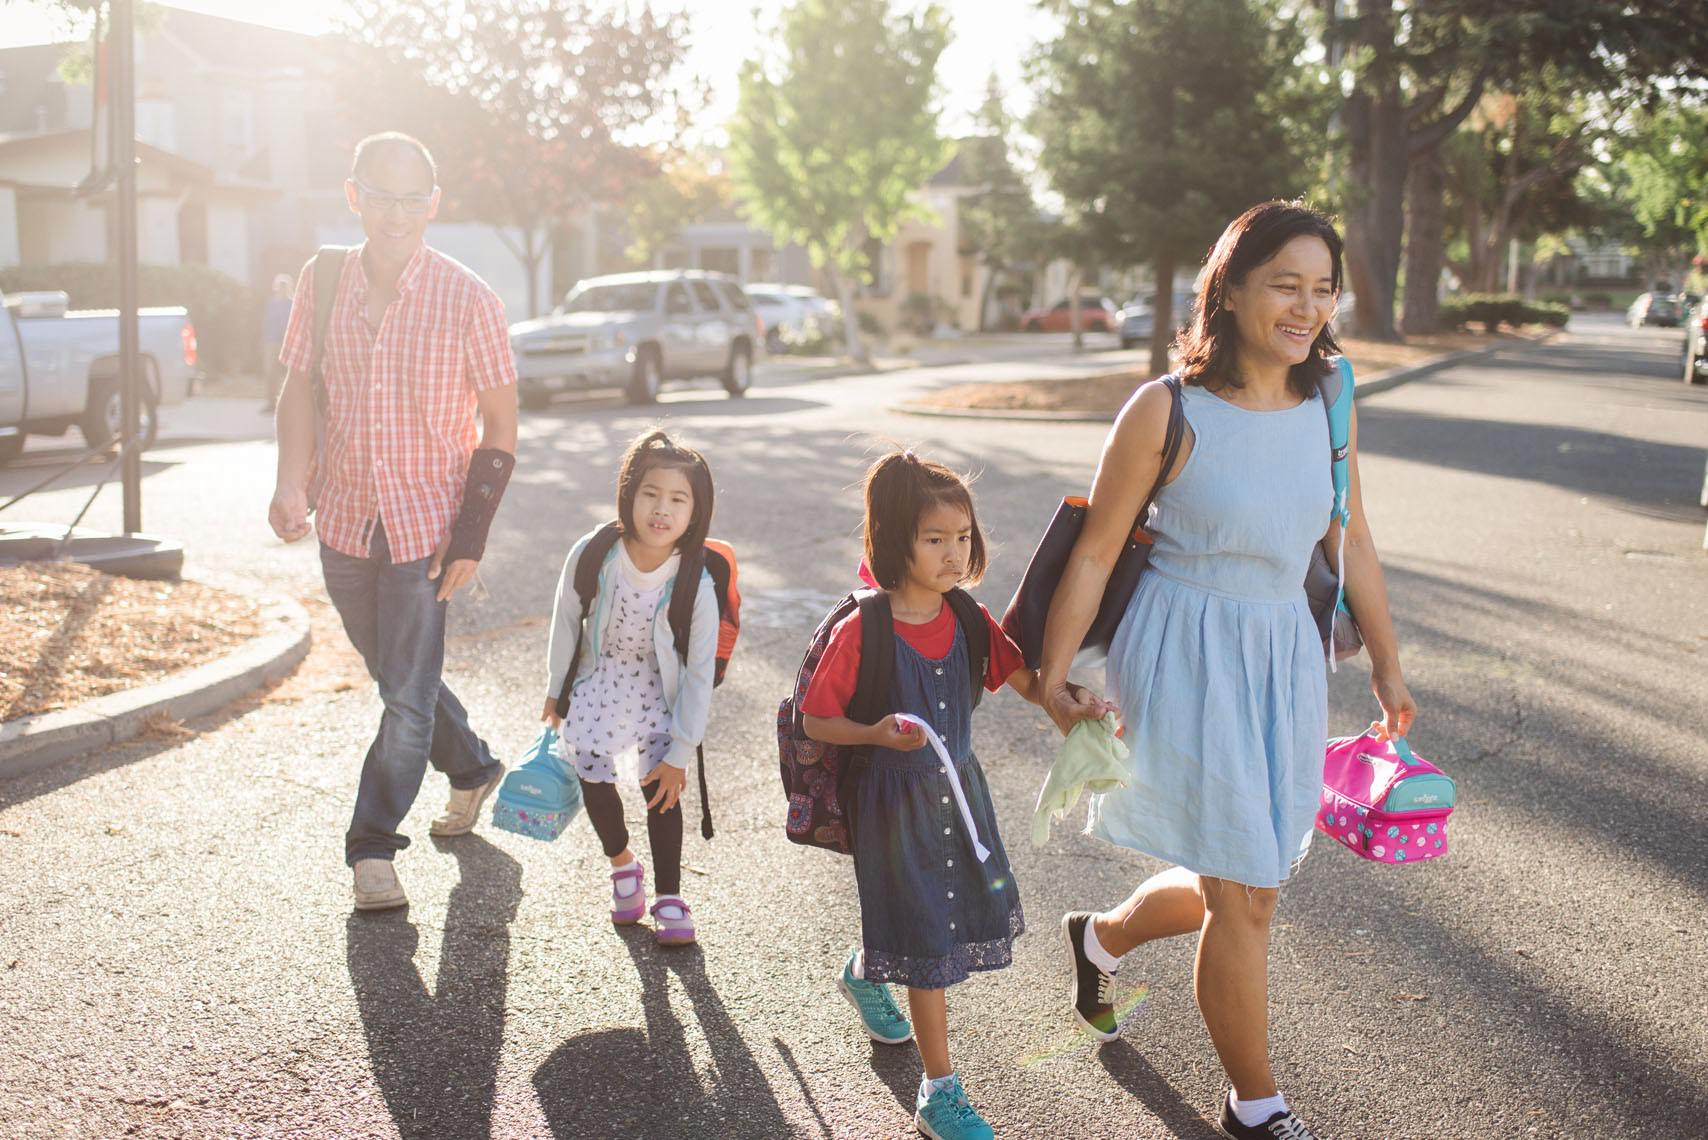 20150831-080210-Family-FirstDayofSchool-MauriceRamirezPhoto